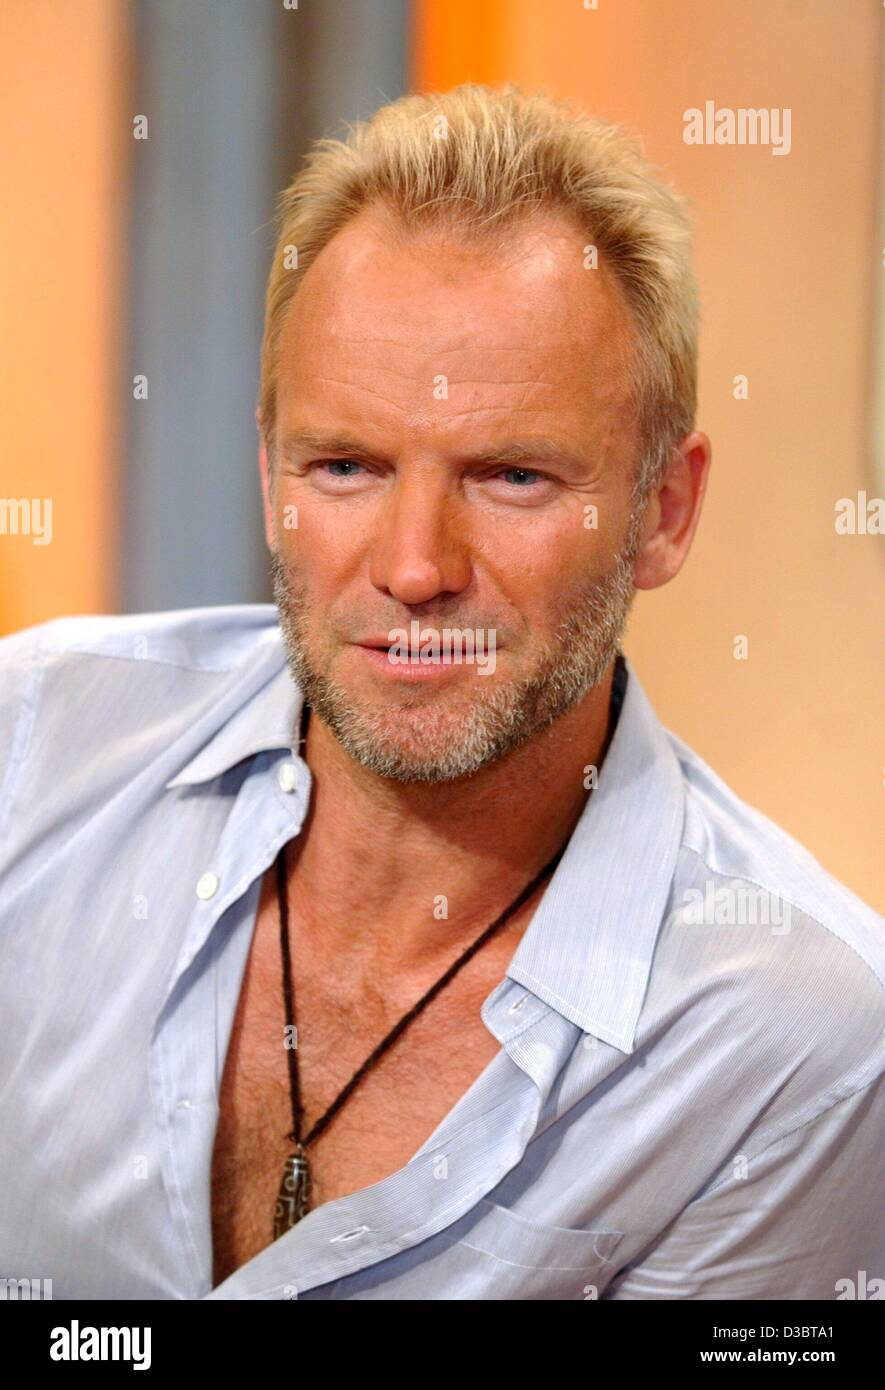 (dpa) - British pop star Sting pictured during a TV show in Cologne, Germany, 16 September 2003. Sting came to Germany - Stock Image